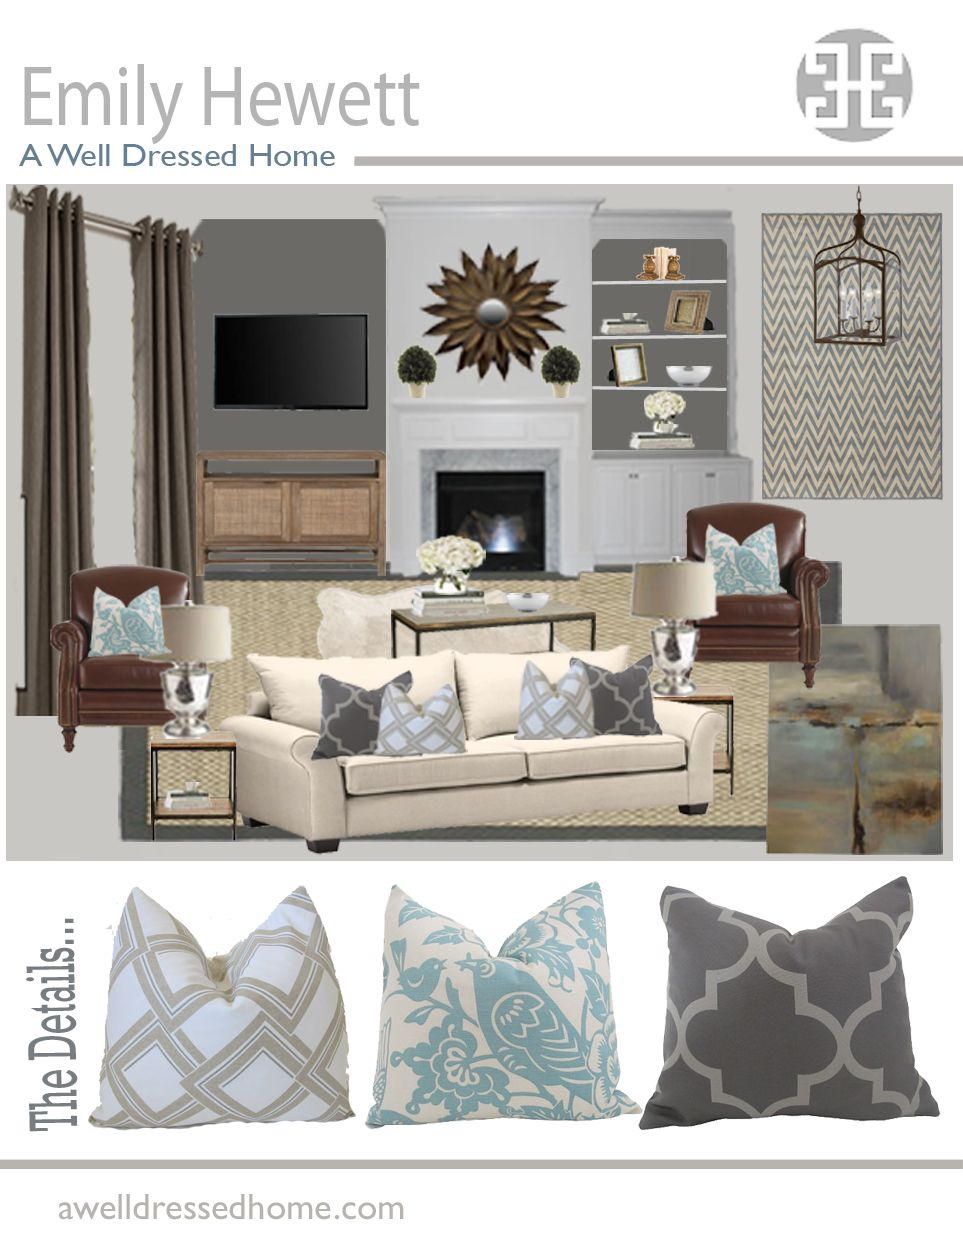 Design Rooms Online Girouard Living Room Online Design Board By Emily Hewett Of A Well